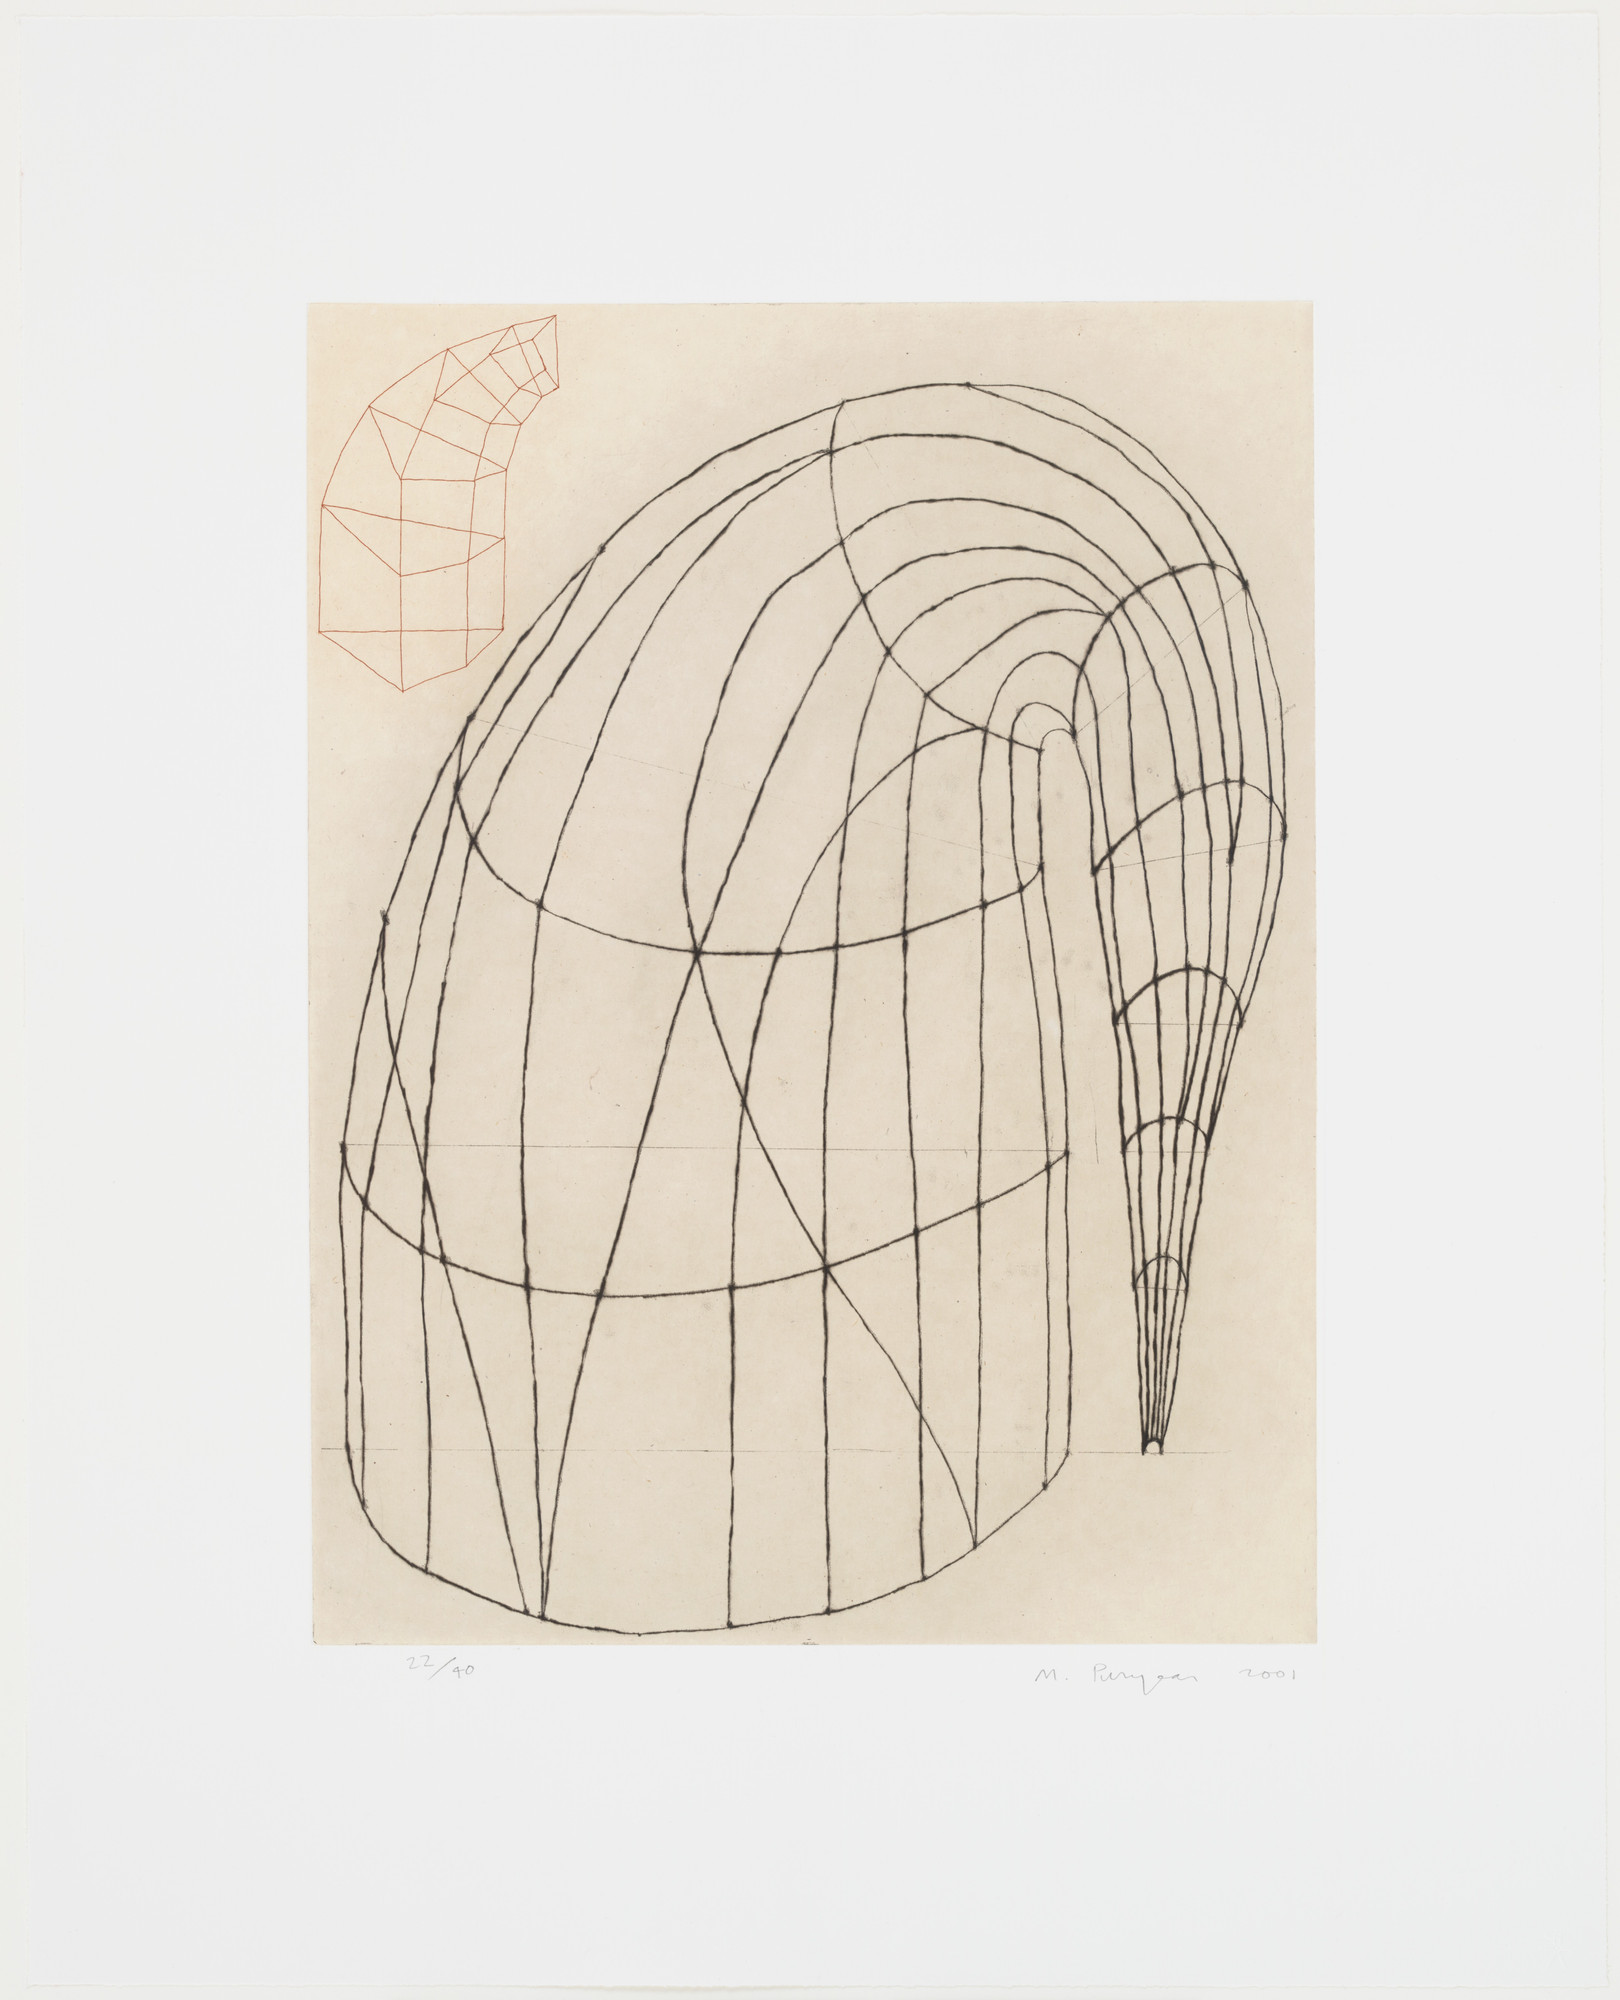 Martin Puryear. Untitled. 2001